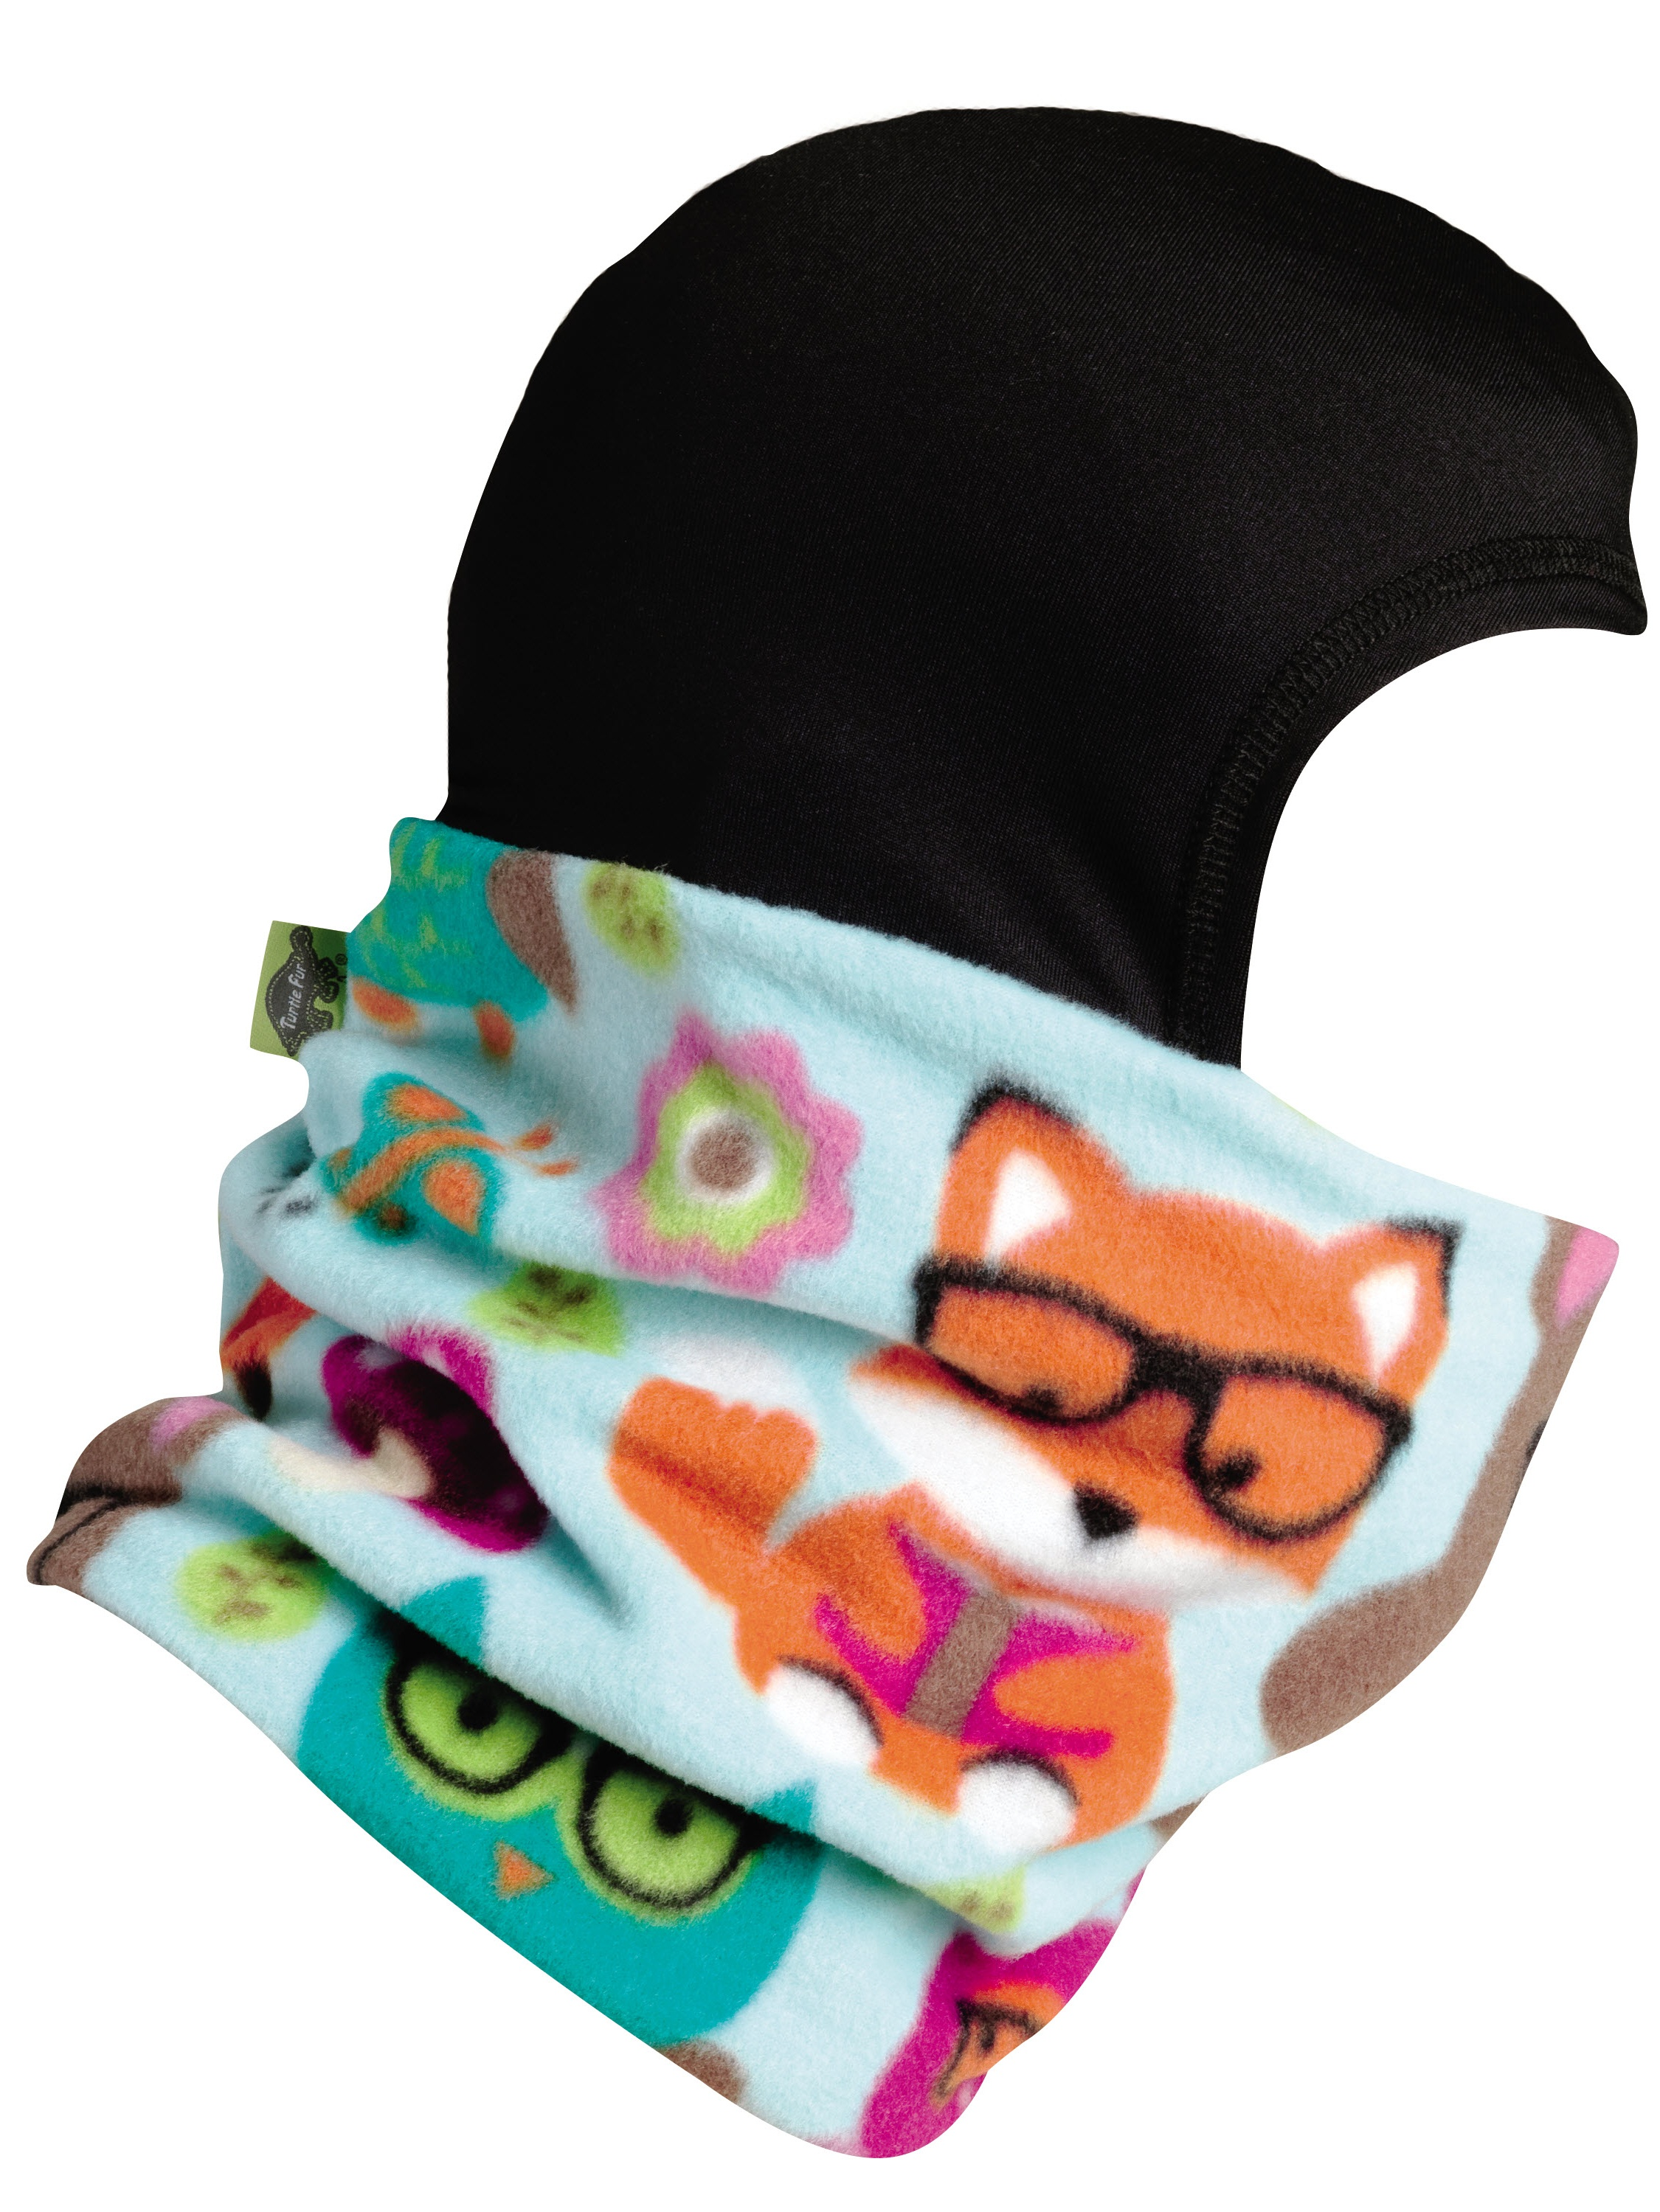 Turtle Fur Kids Shellaclava One Piece Balaclava Playful Print Fleece Neck Warmer by Turtle Fur